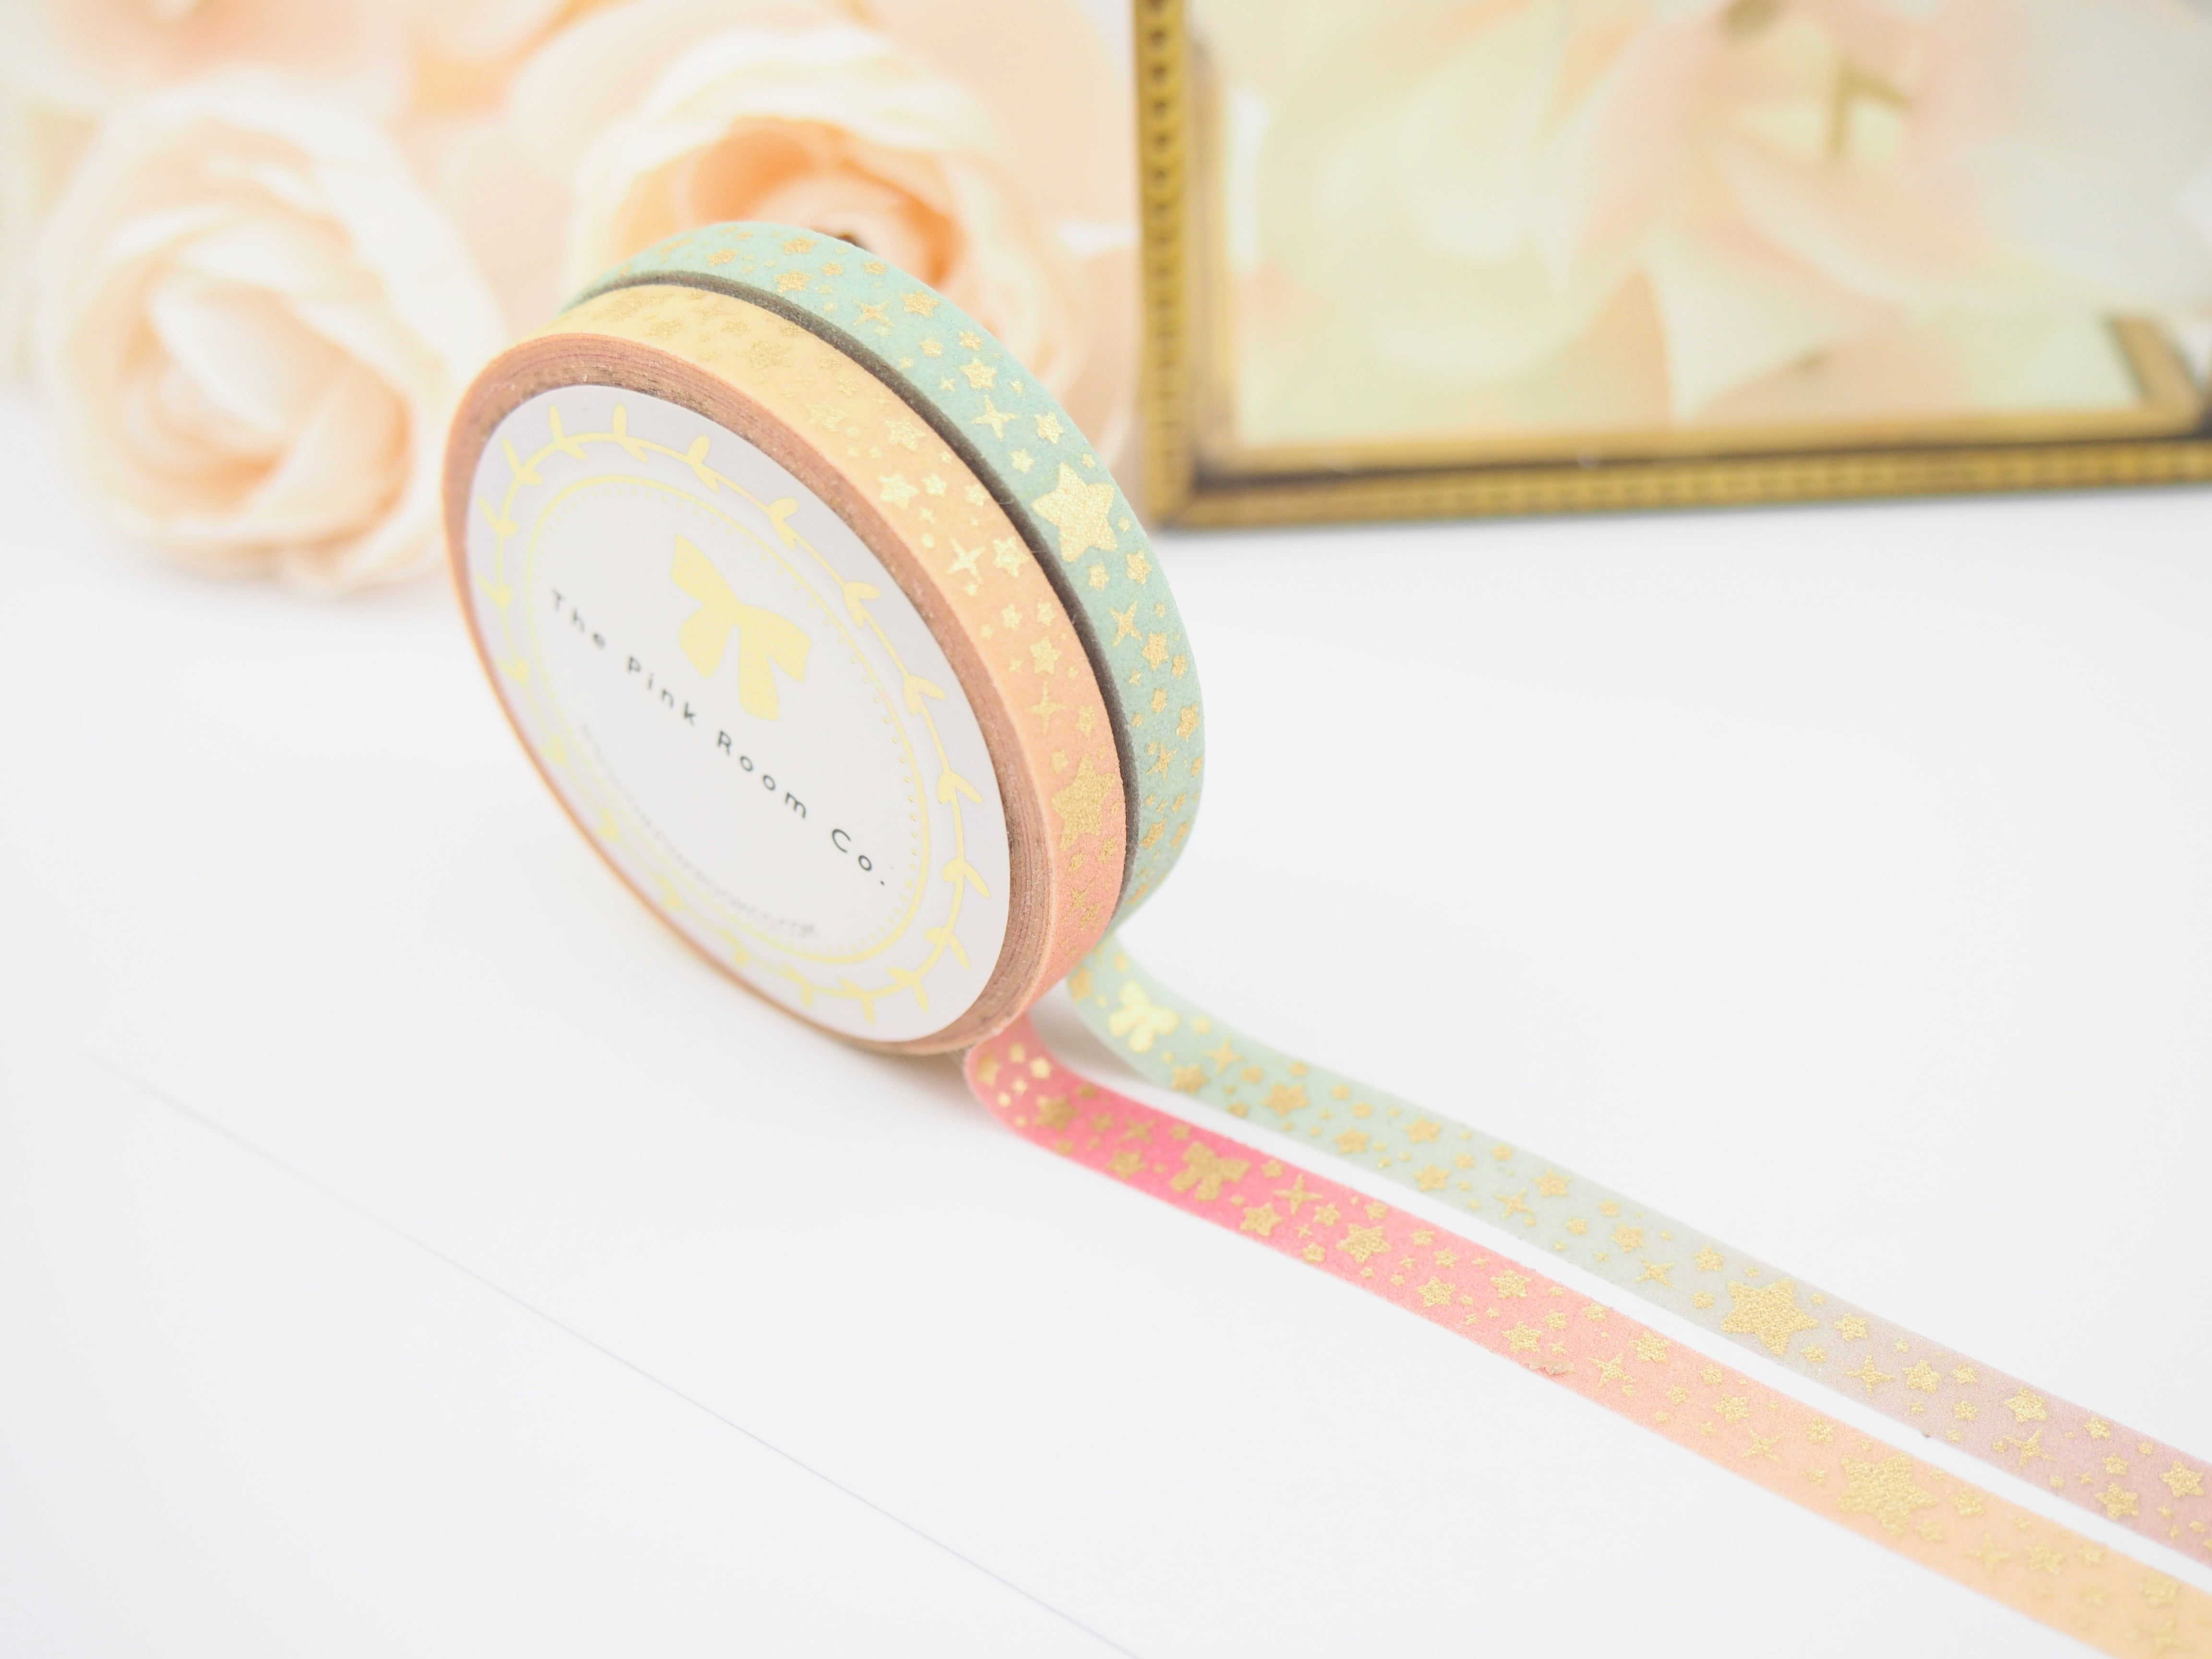 Spring Twinkle Glitter Washi Collection  - The Pink Room Co Exclusive Original